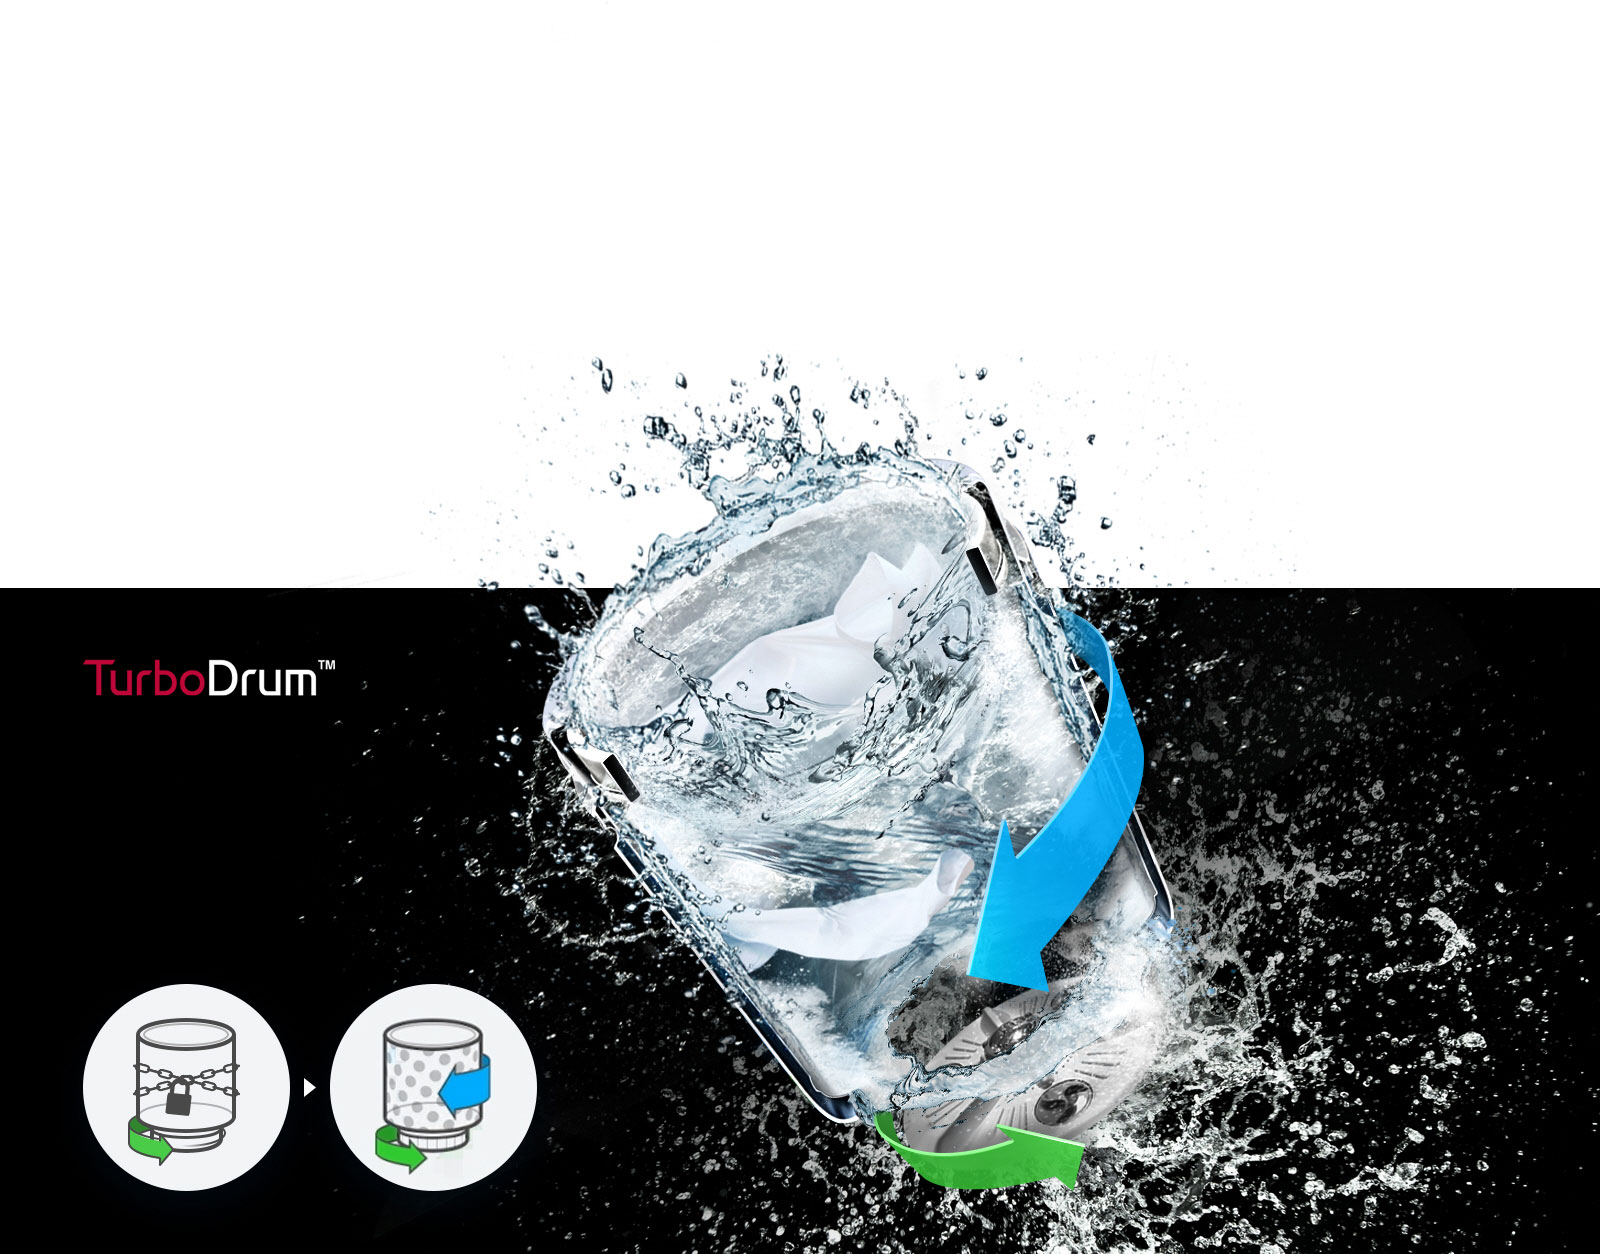 A see through image of water moving around and splashing in the TurboDrum with a green arrow and a blue arrow pointing towards each other show how the water is moved to provide a powerful wash. Two icons are on the left bottom with one featuring one green arrow to show how the drum can rotate in the same direction. The other icon is moving and has one green arrow going one direction and two blue arrows going the other direction to show how the tub and pulsator can rotate independently.